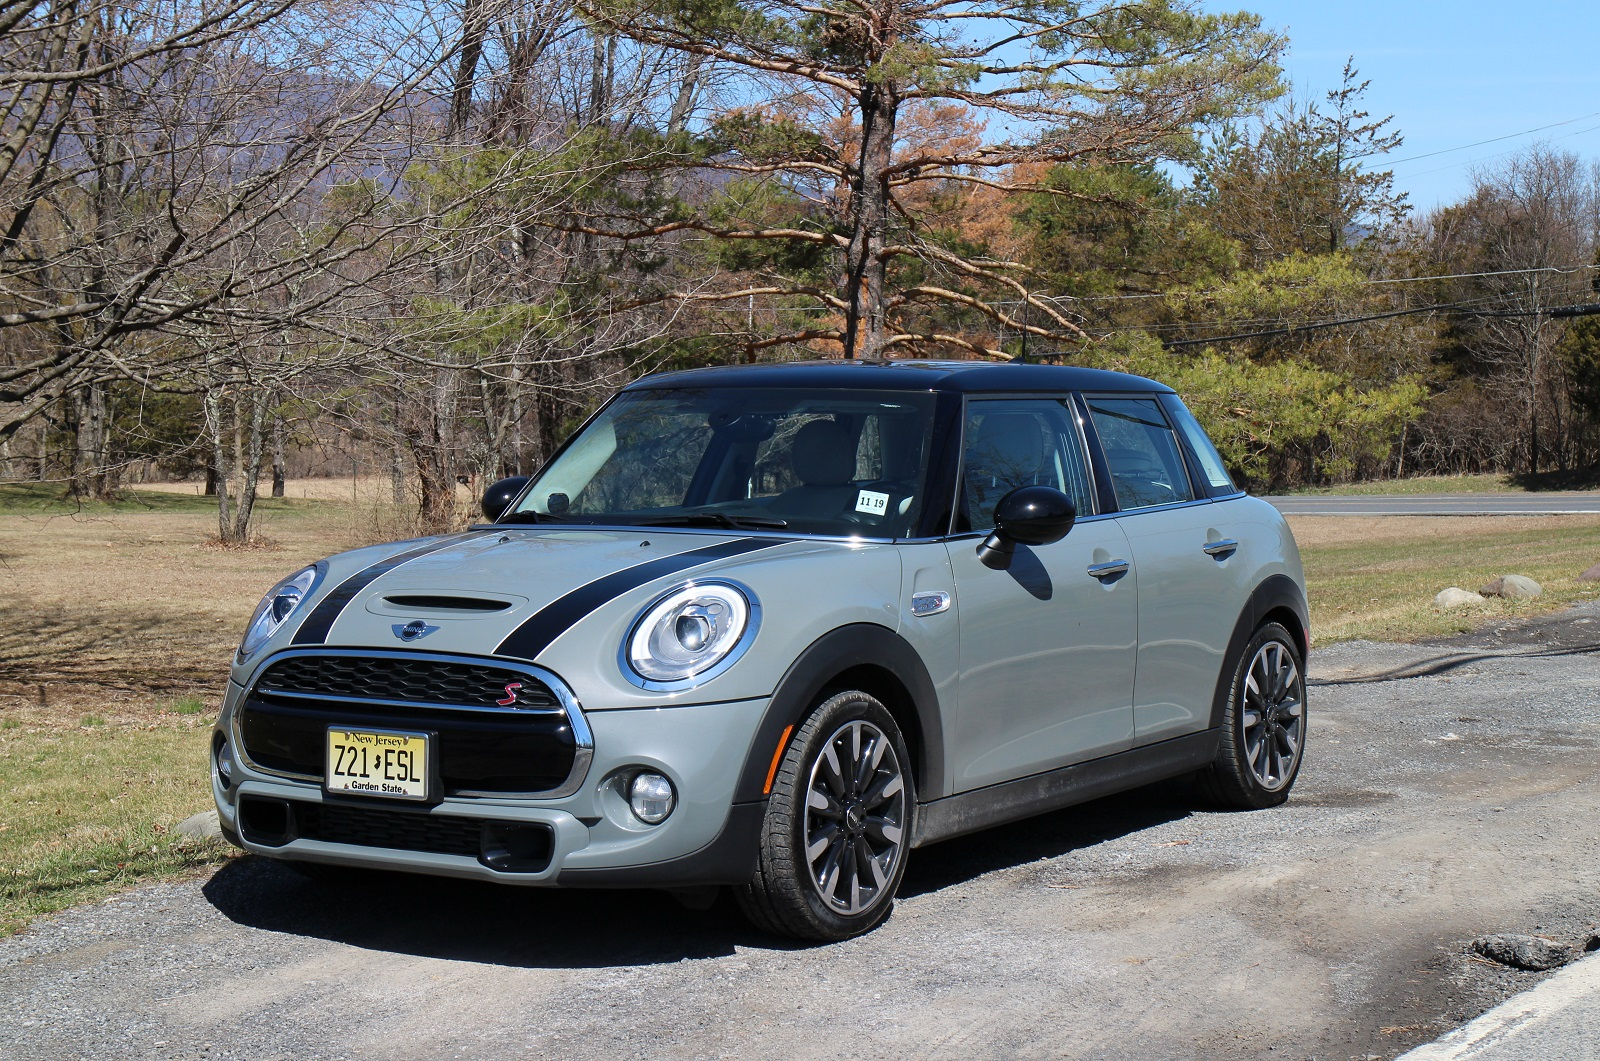 mini cooper 2015 4 door white. mini cooper 2015 4 door white